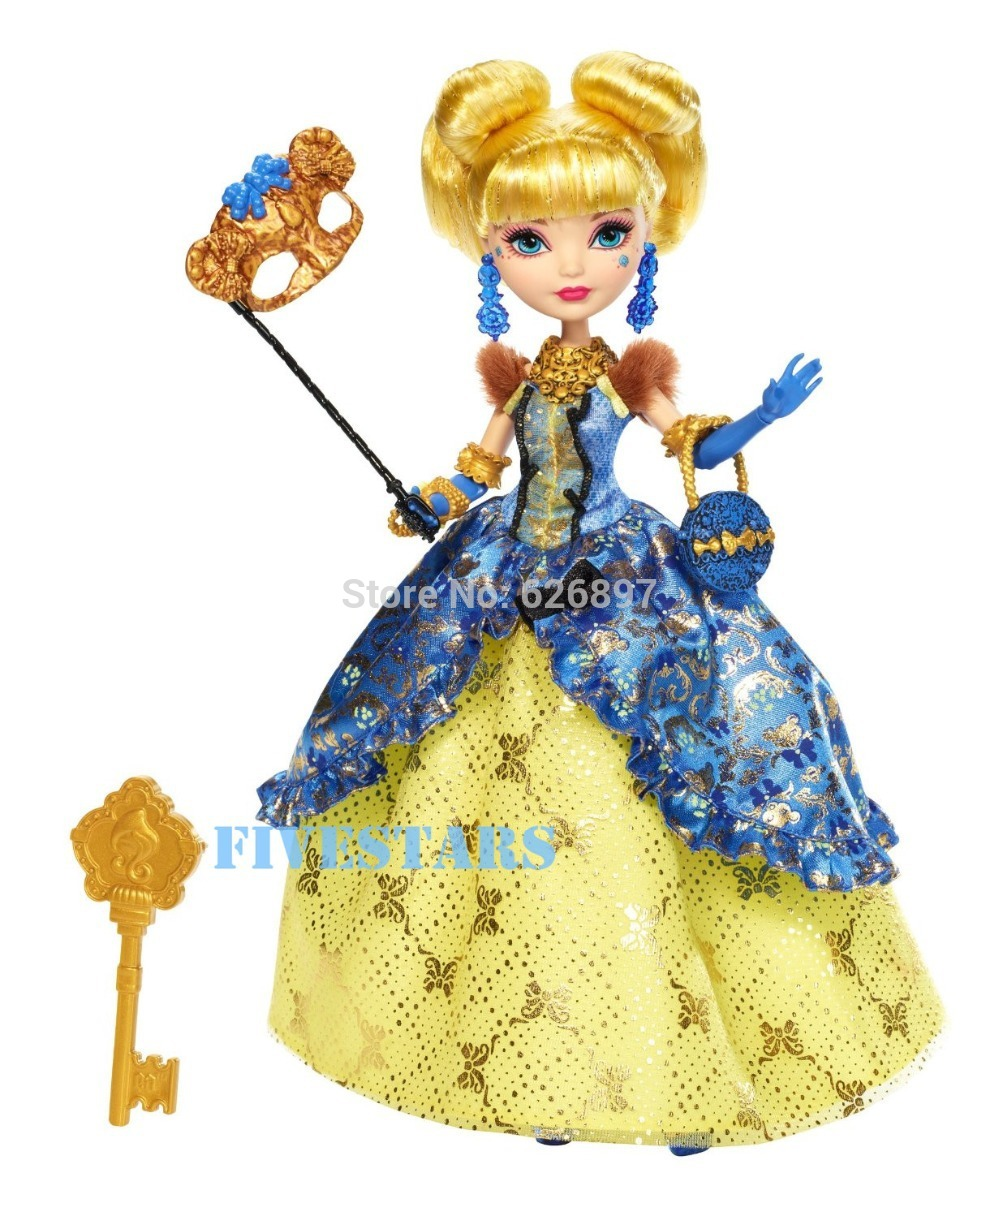 Genuine Original Ever After High Thronecoming Blondie Lockes Brand Dolls for Girls Christmas New Year Birthday Gifts Baby Toys<br><br>Aliexpress